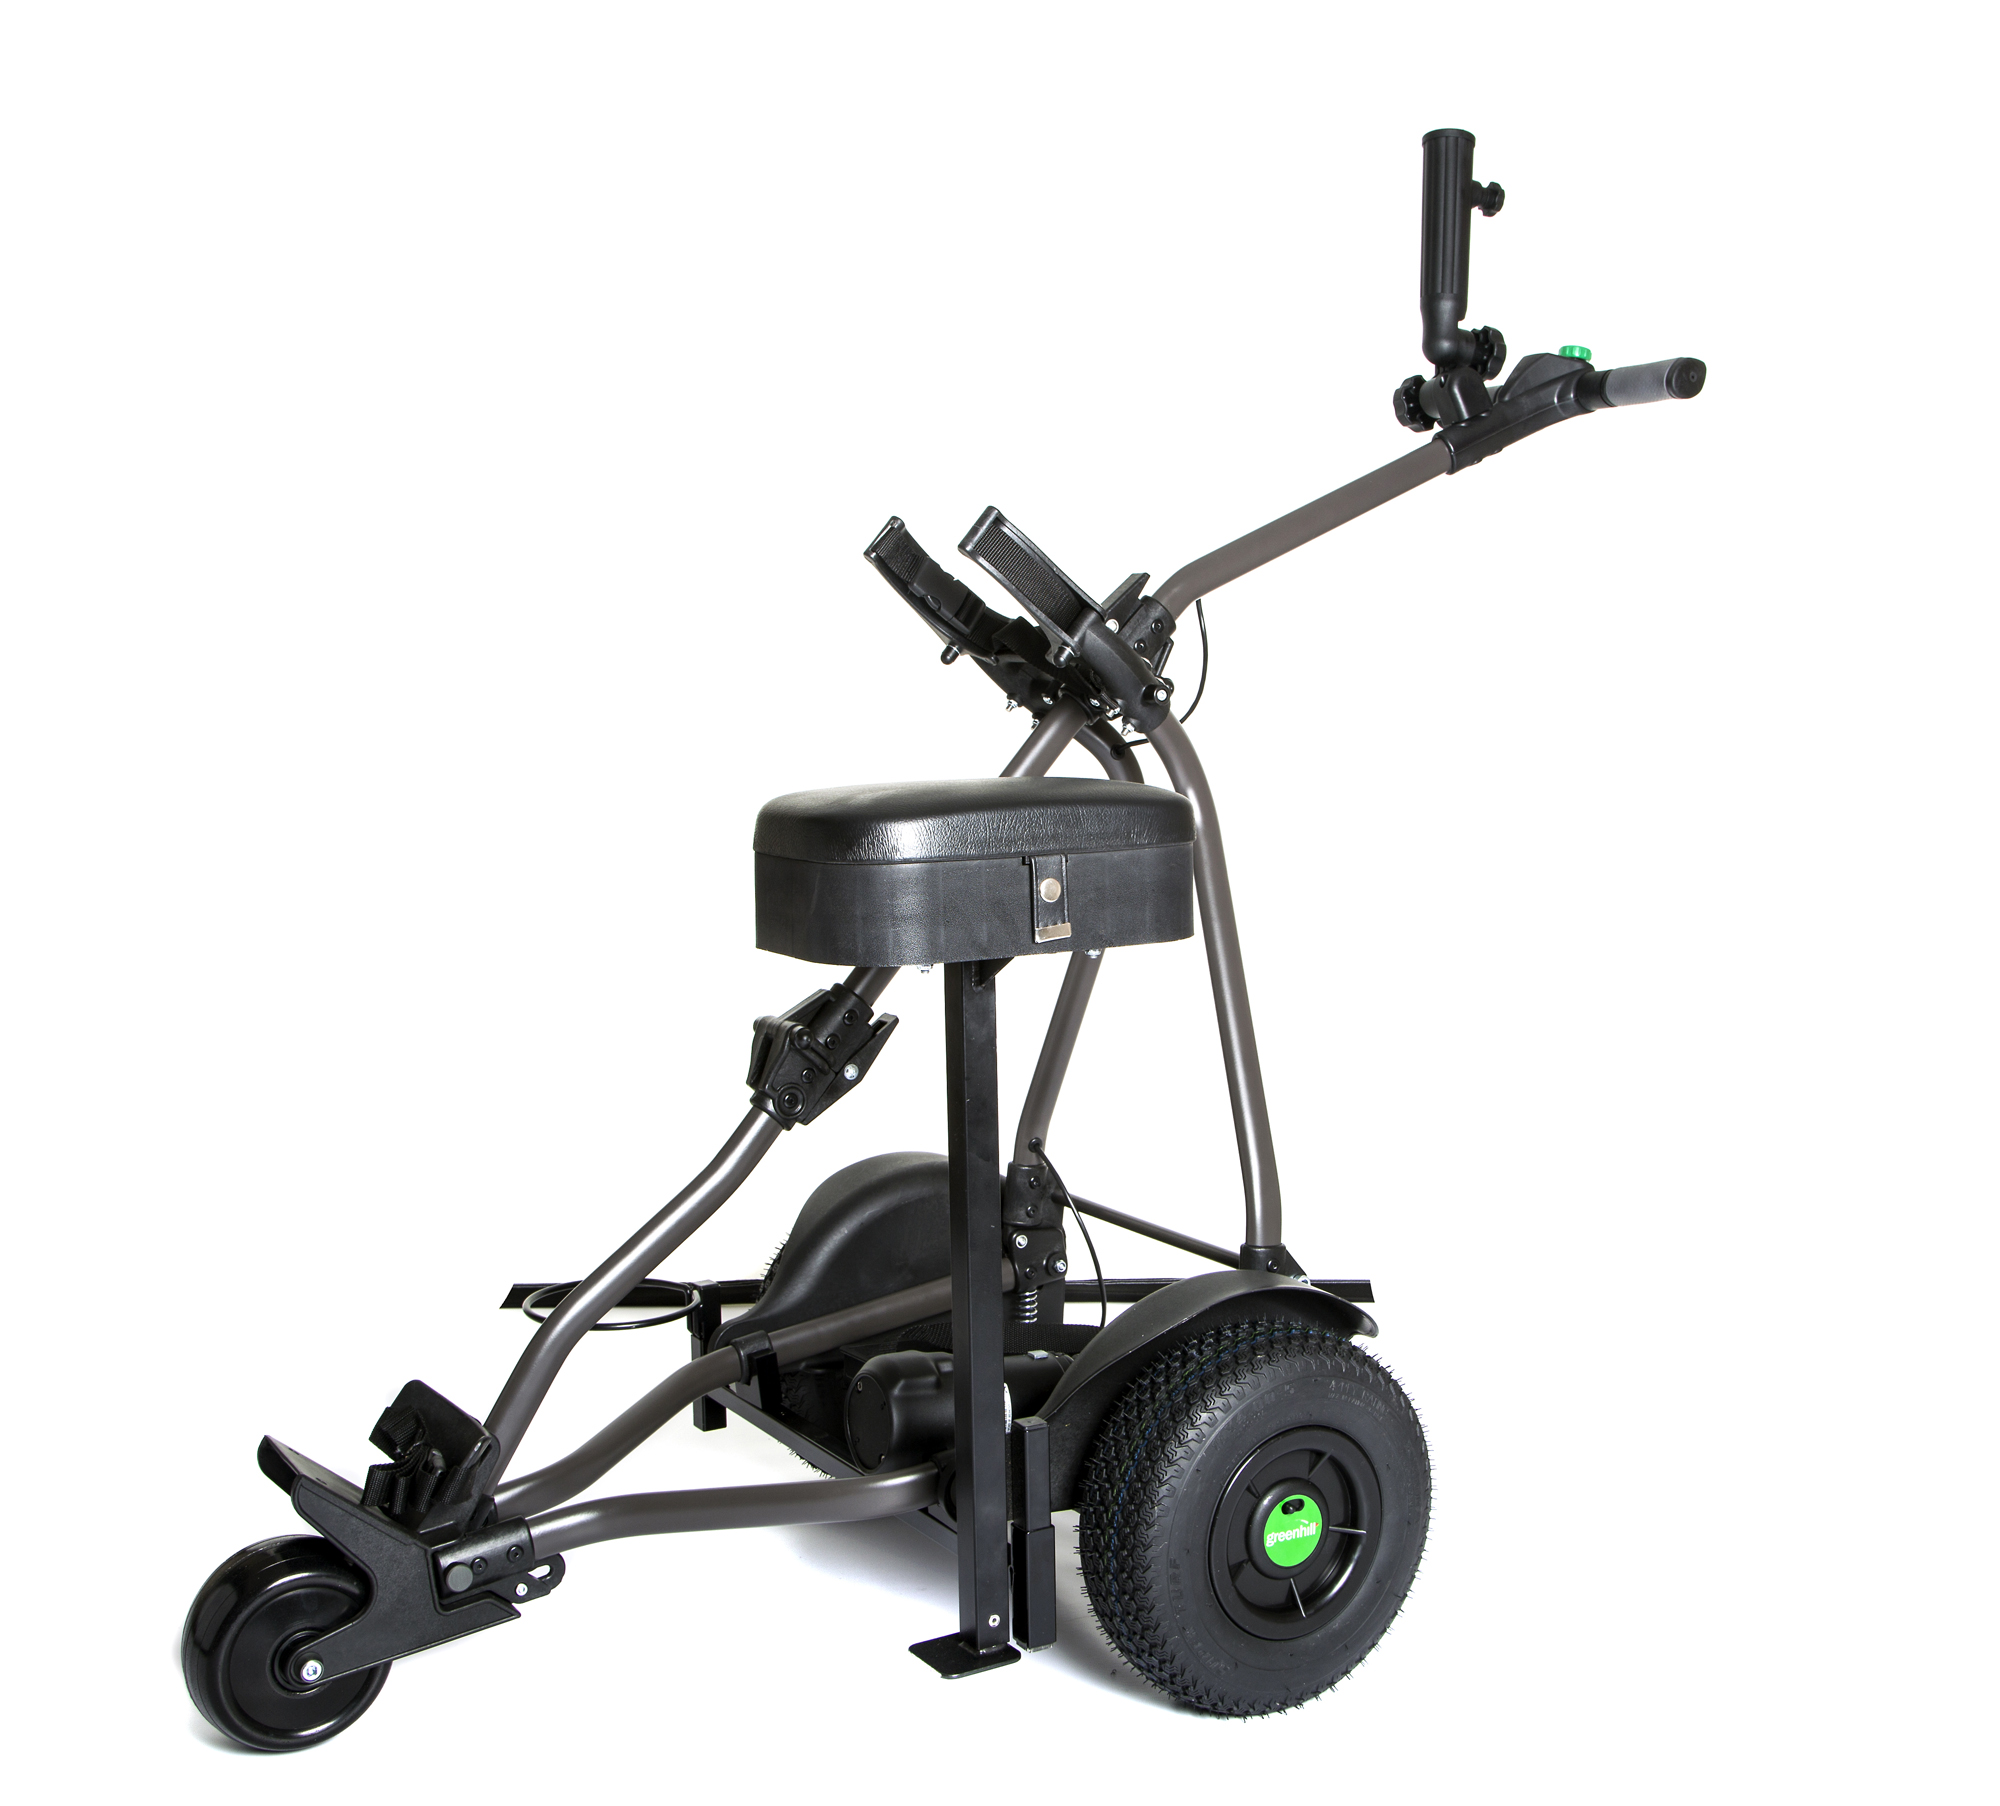 GreenHill 180GTS DIGITAL 22Ah LITHIUM Golf Buggy